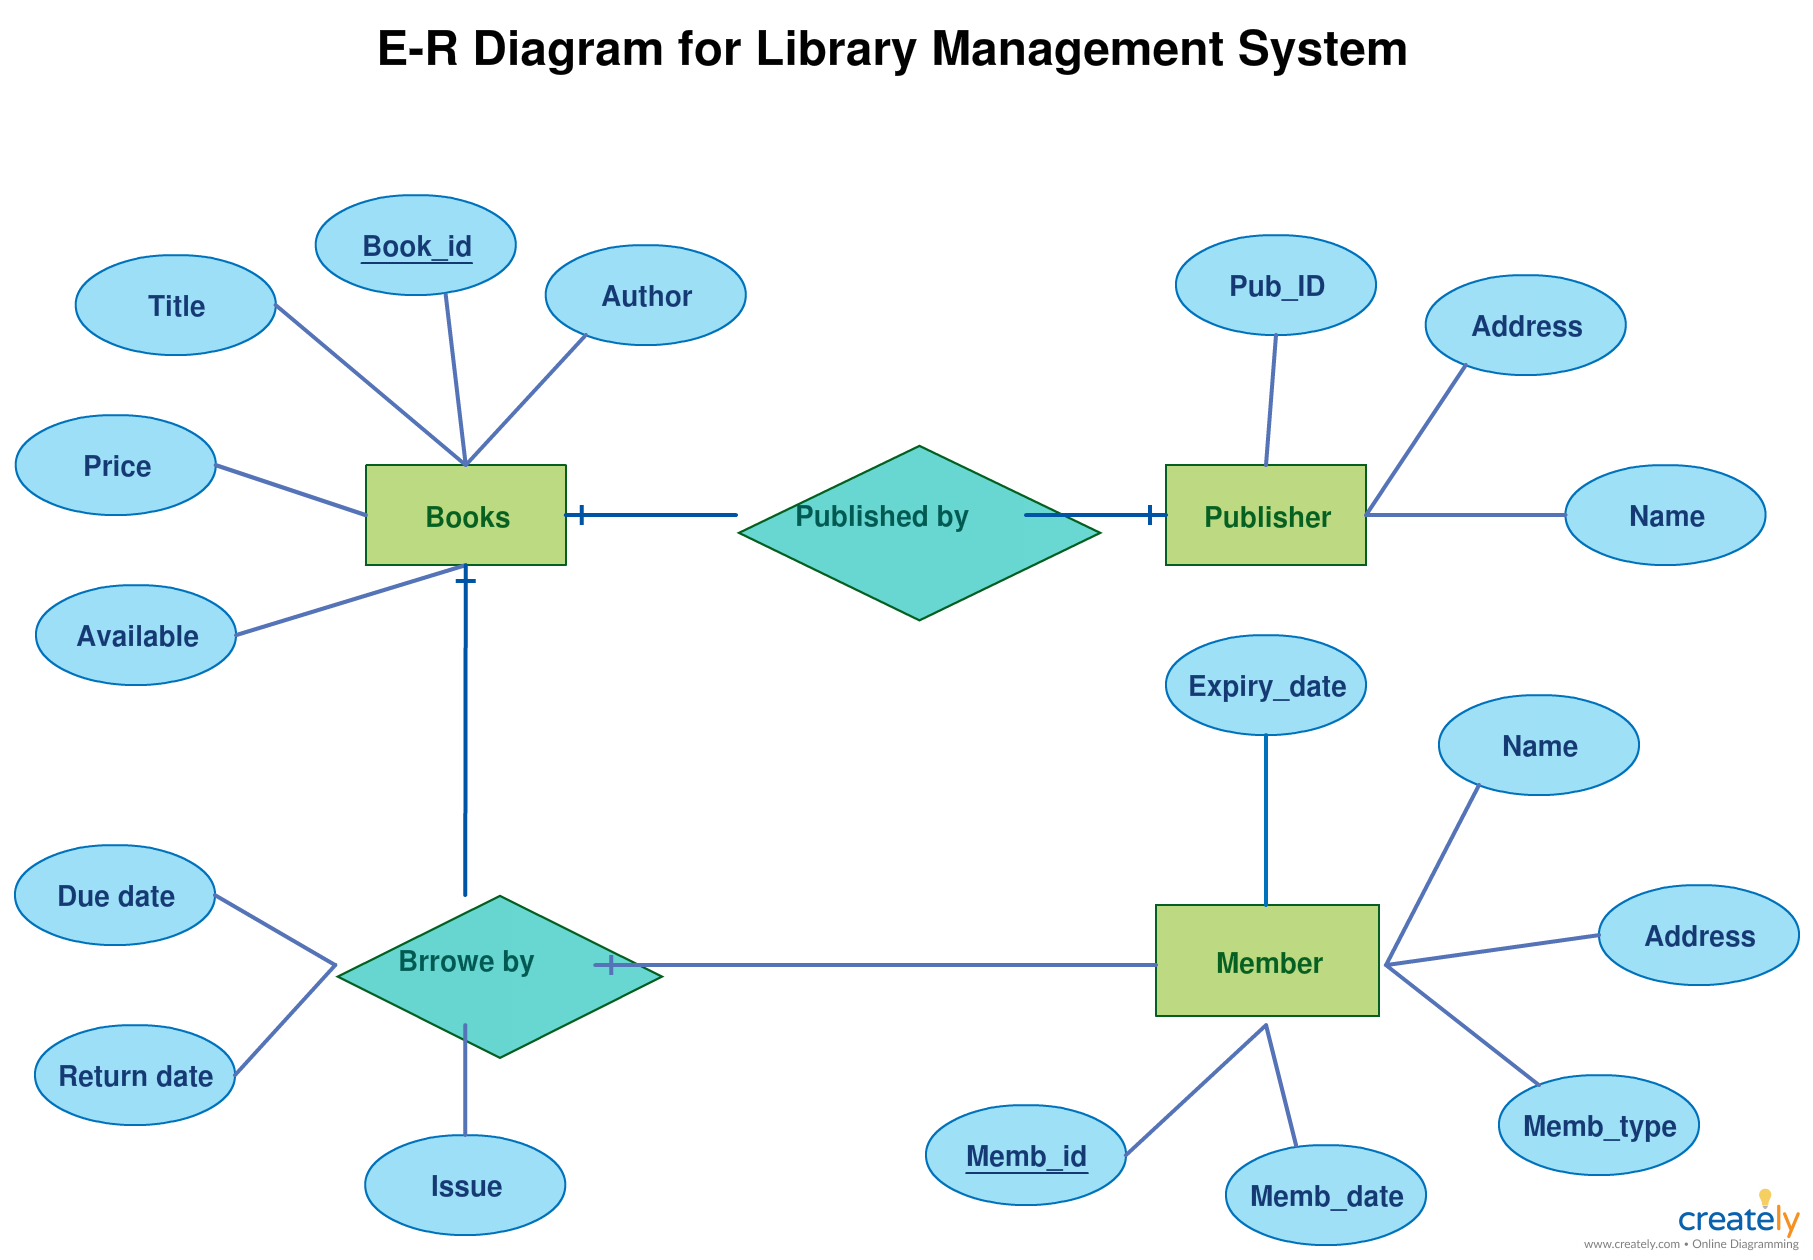 Er Diagram Tutorial | Data Flow Diagram, Diagram, Class Diagram in Er 다이어그램